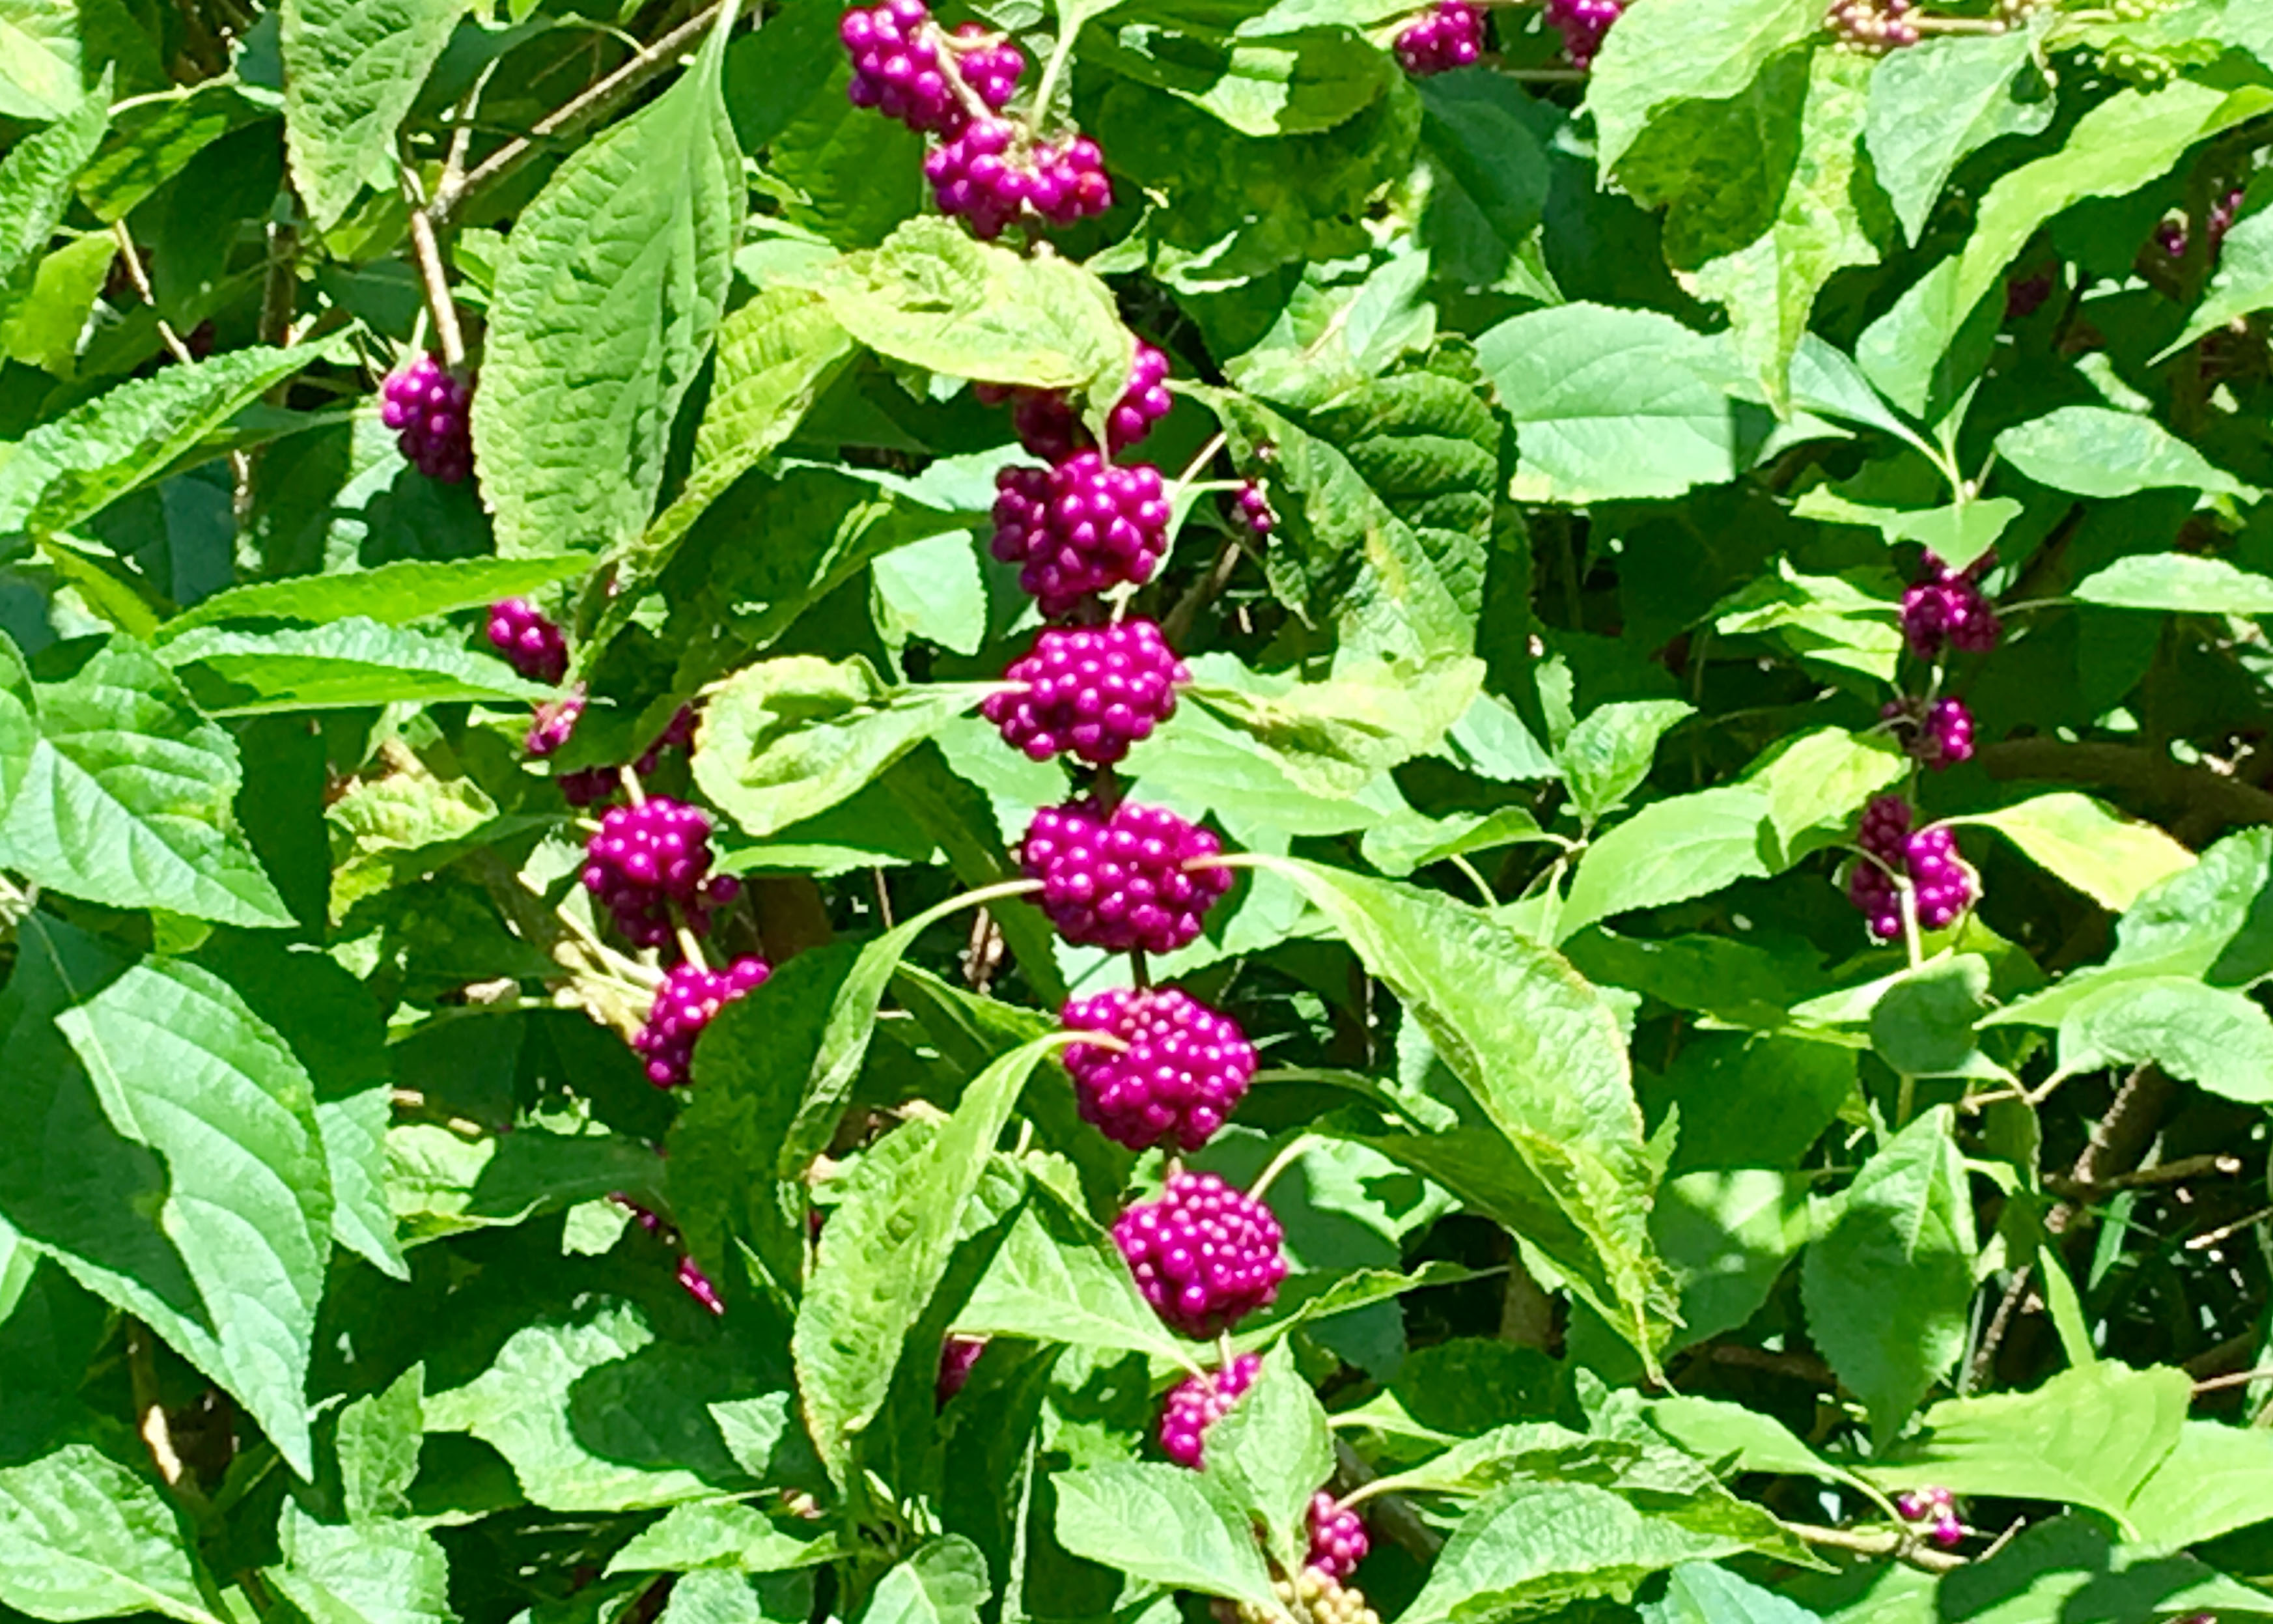 American beautyberry have gorgeous purple berries in the fall.